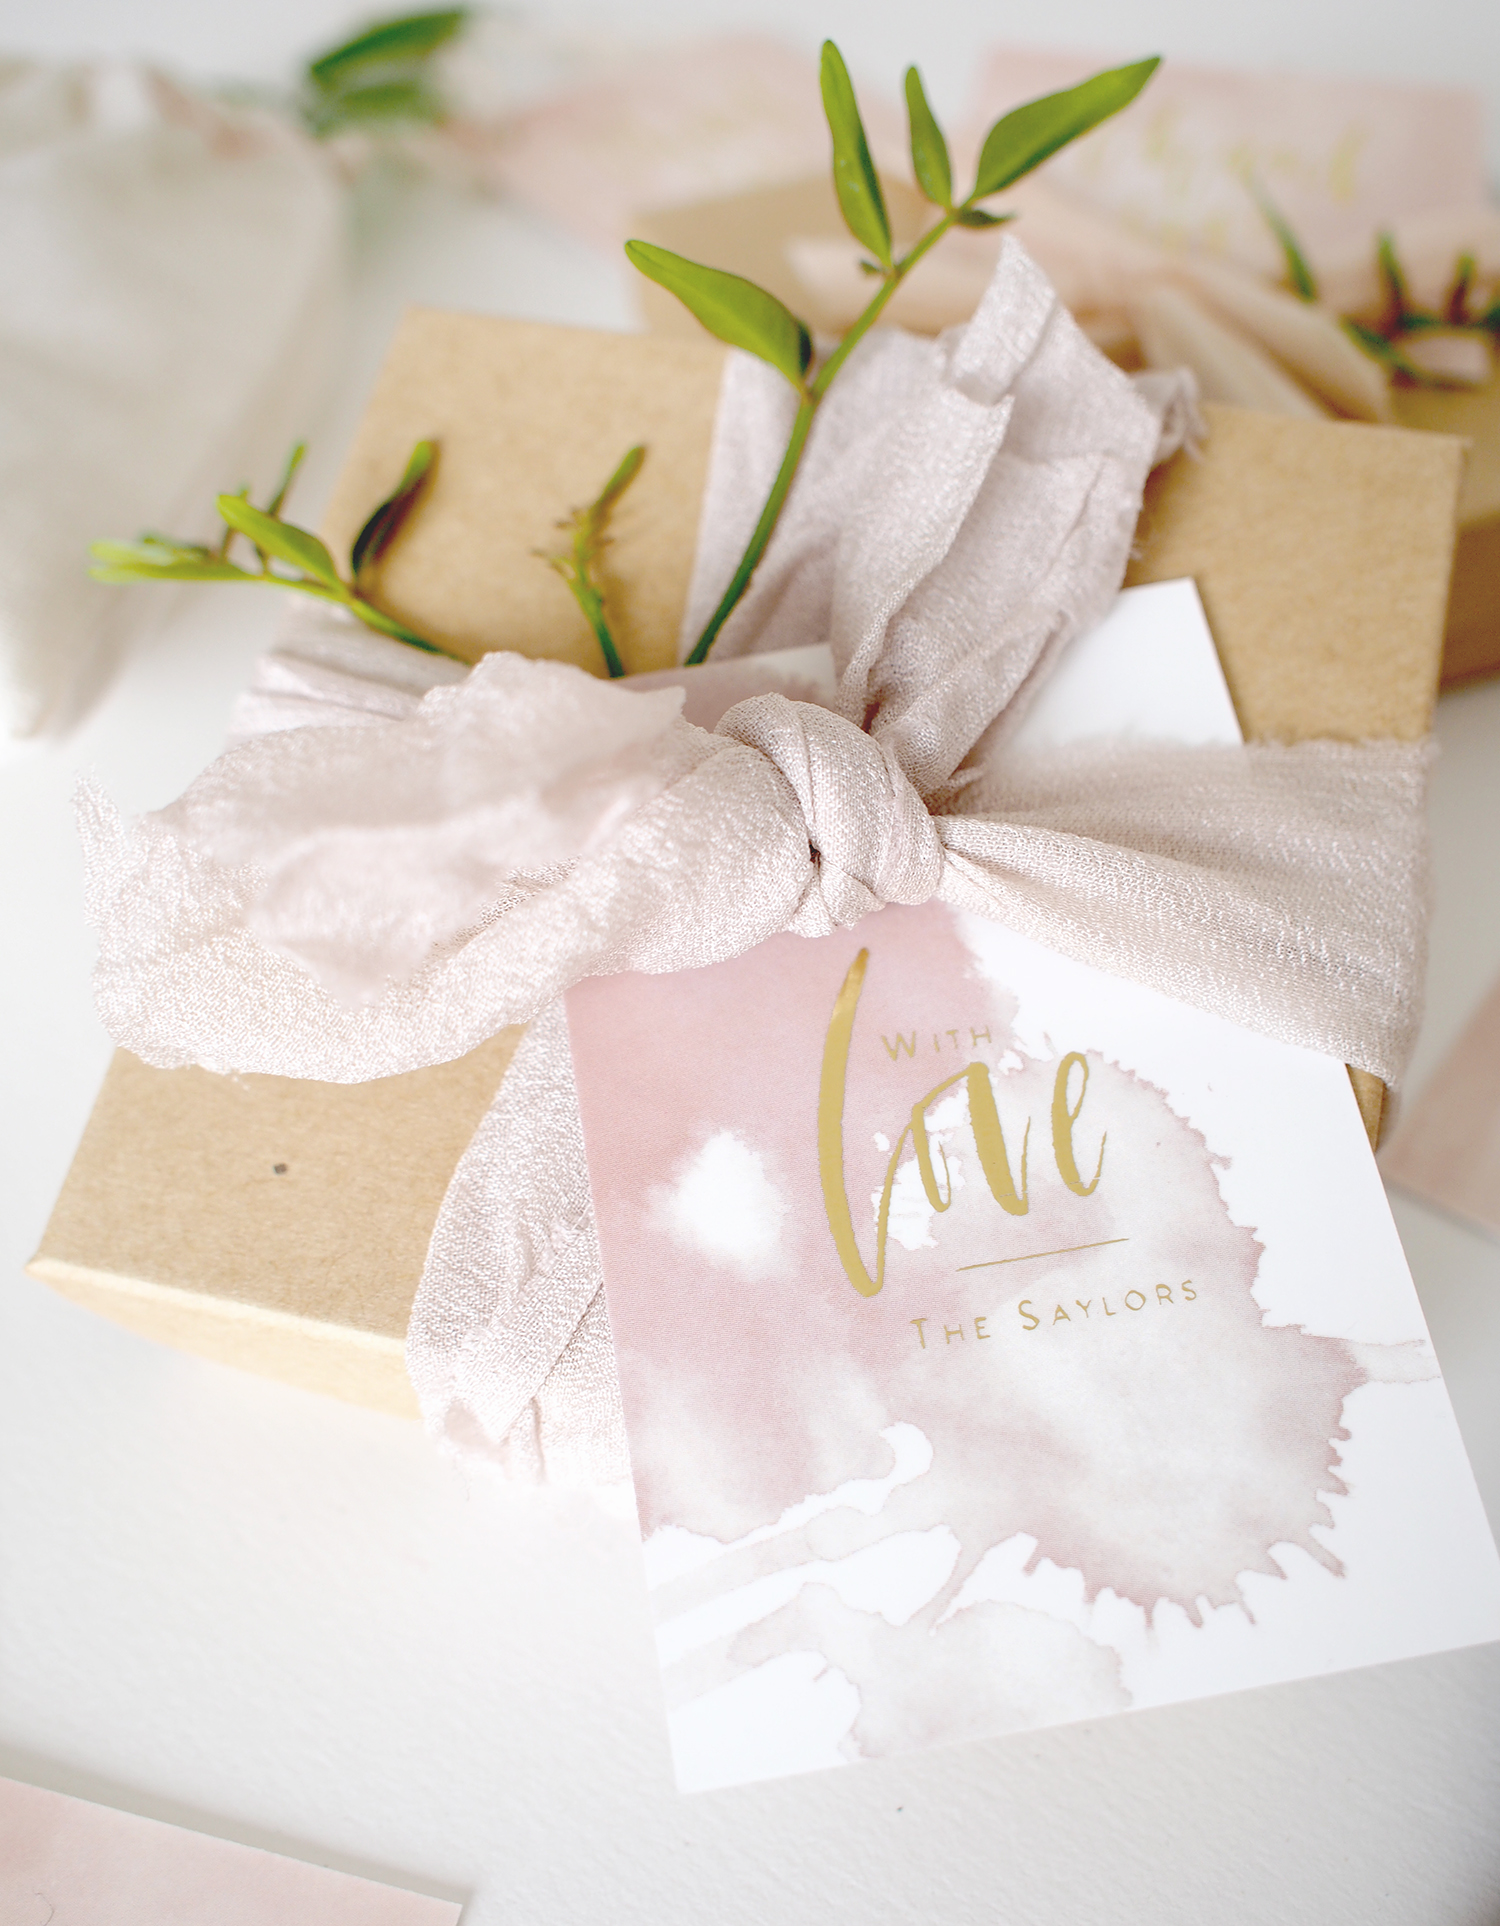 Simple wrapping for gifts or favors with custom gold foil tags, ribbon and a fresh clipping   A Fabulous Fete